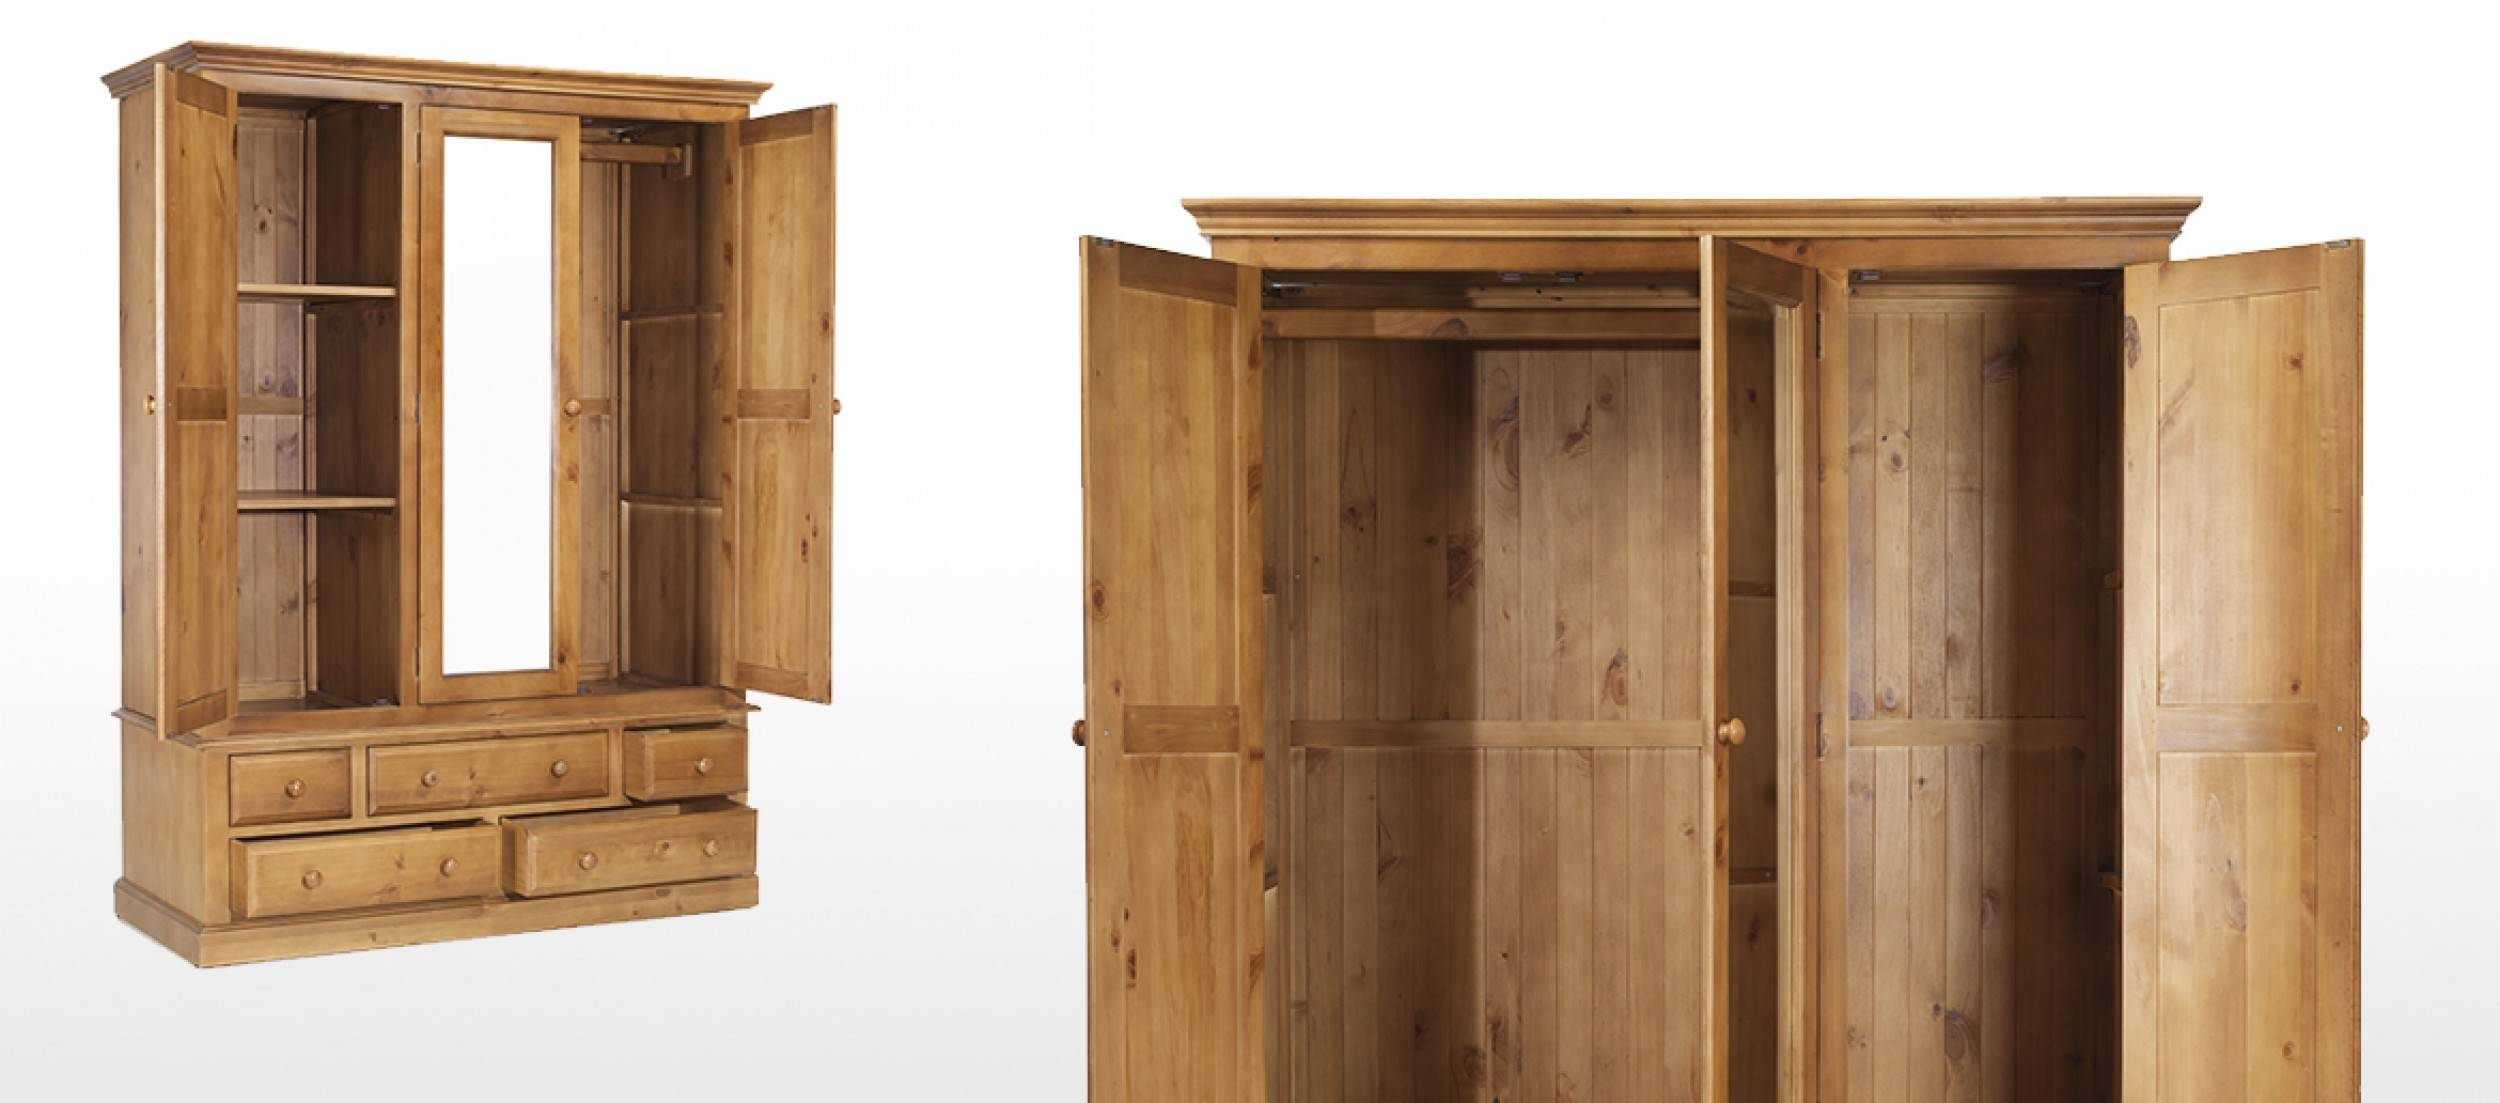 Essentials Pine Triple Wardrobe With Drawers | Quercus Living intended for Pine Wardrobe With Drawers and Shelves (Image 14 of 30)